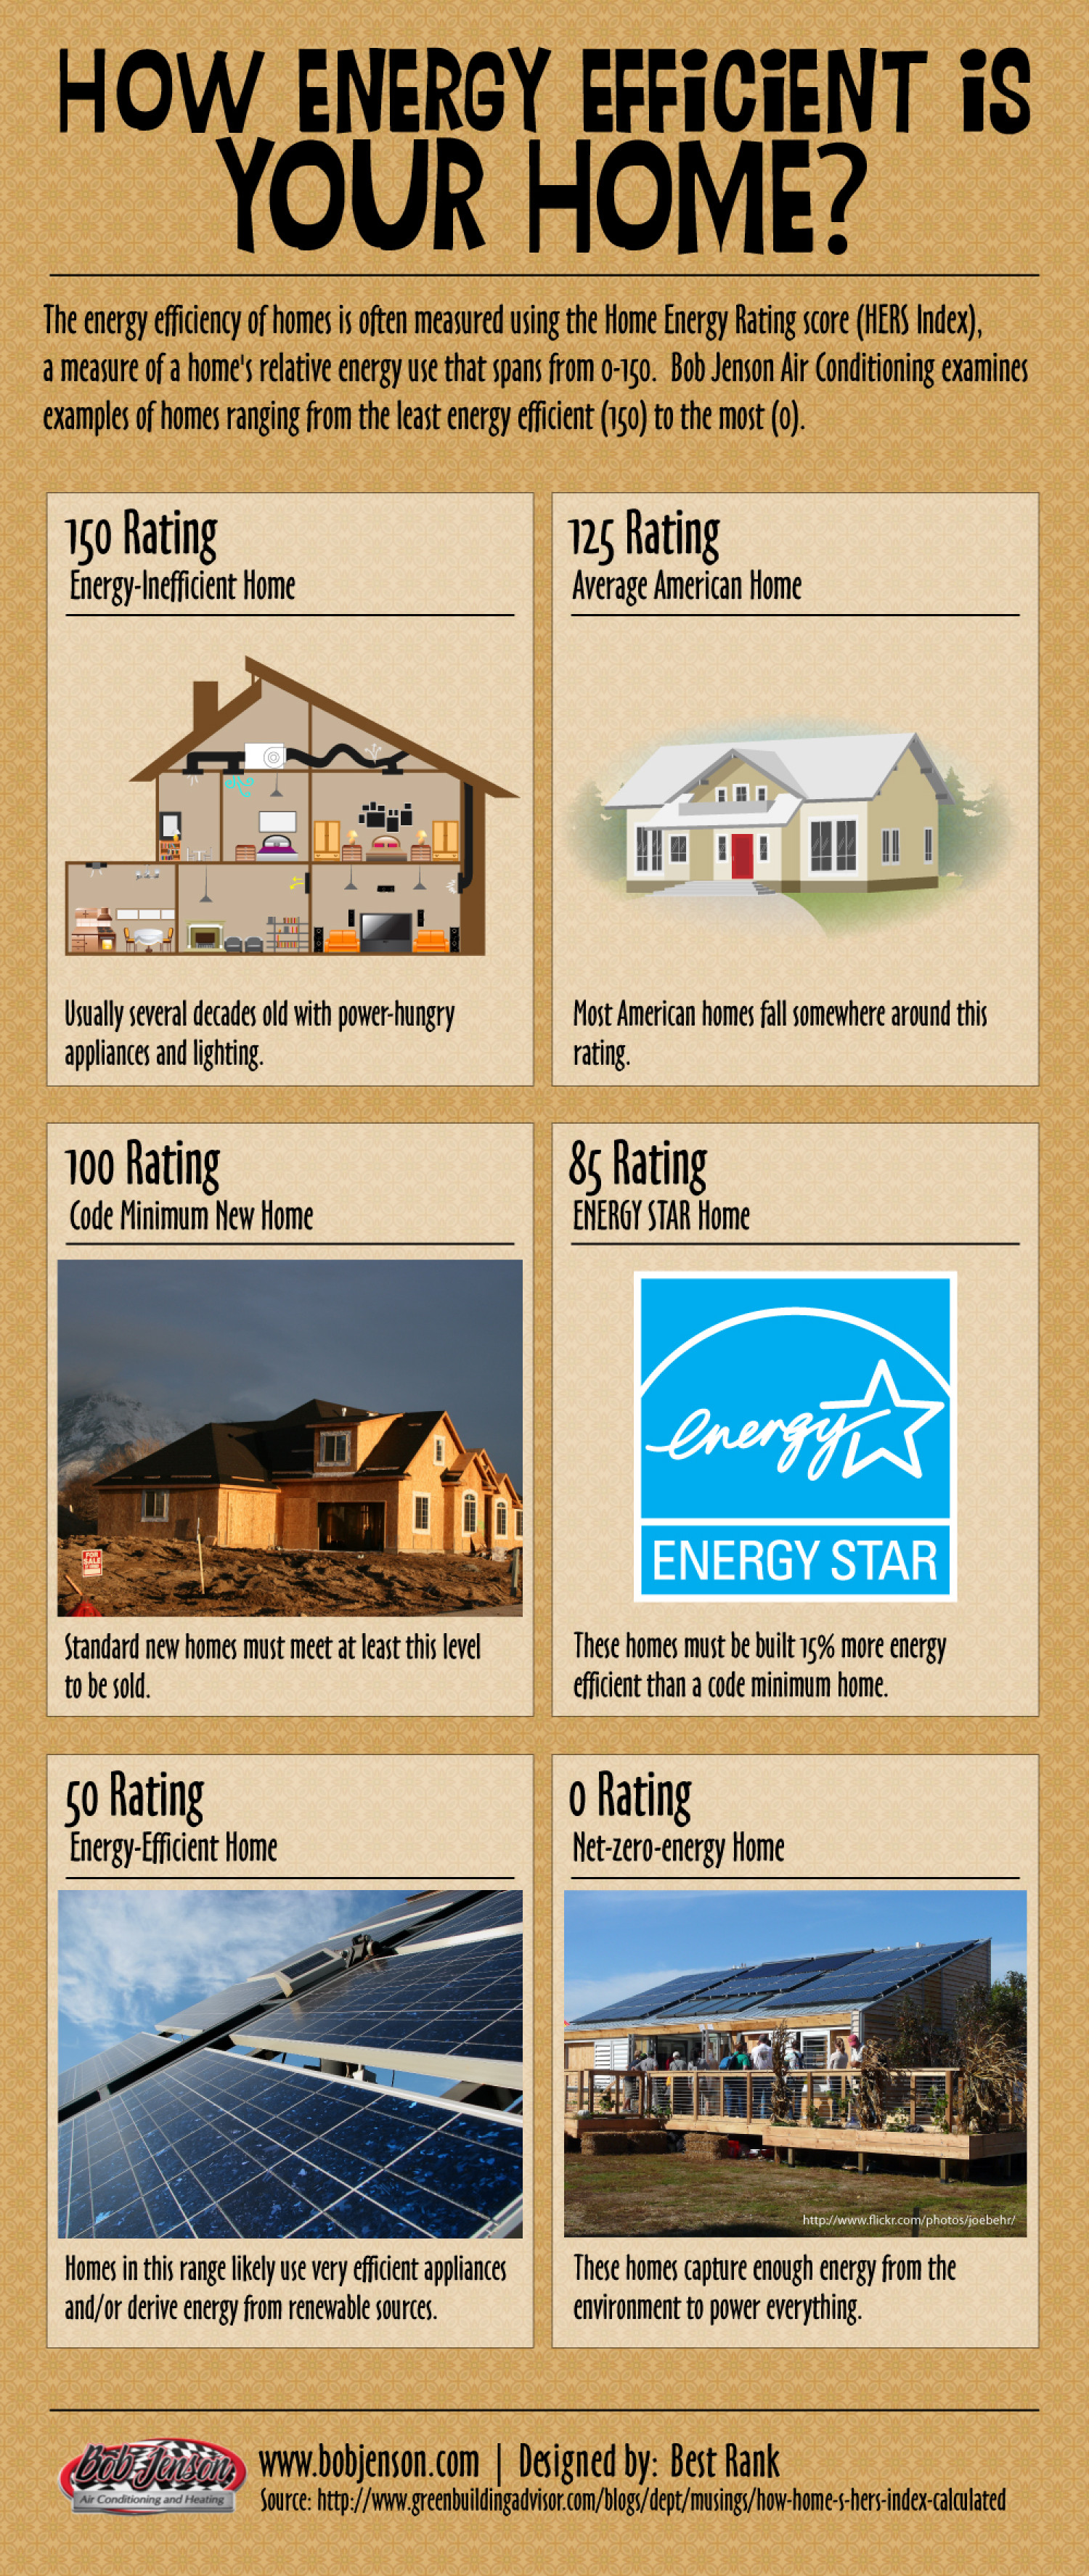 How Energy Efficient Is Your Home? Infographic